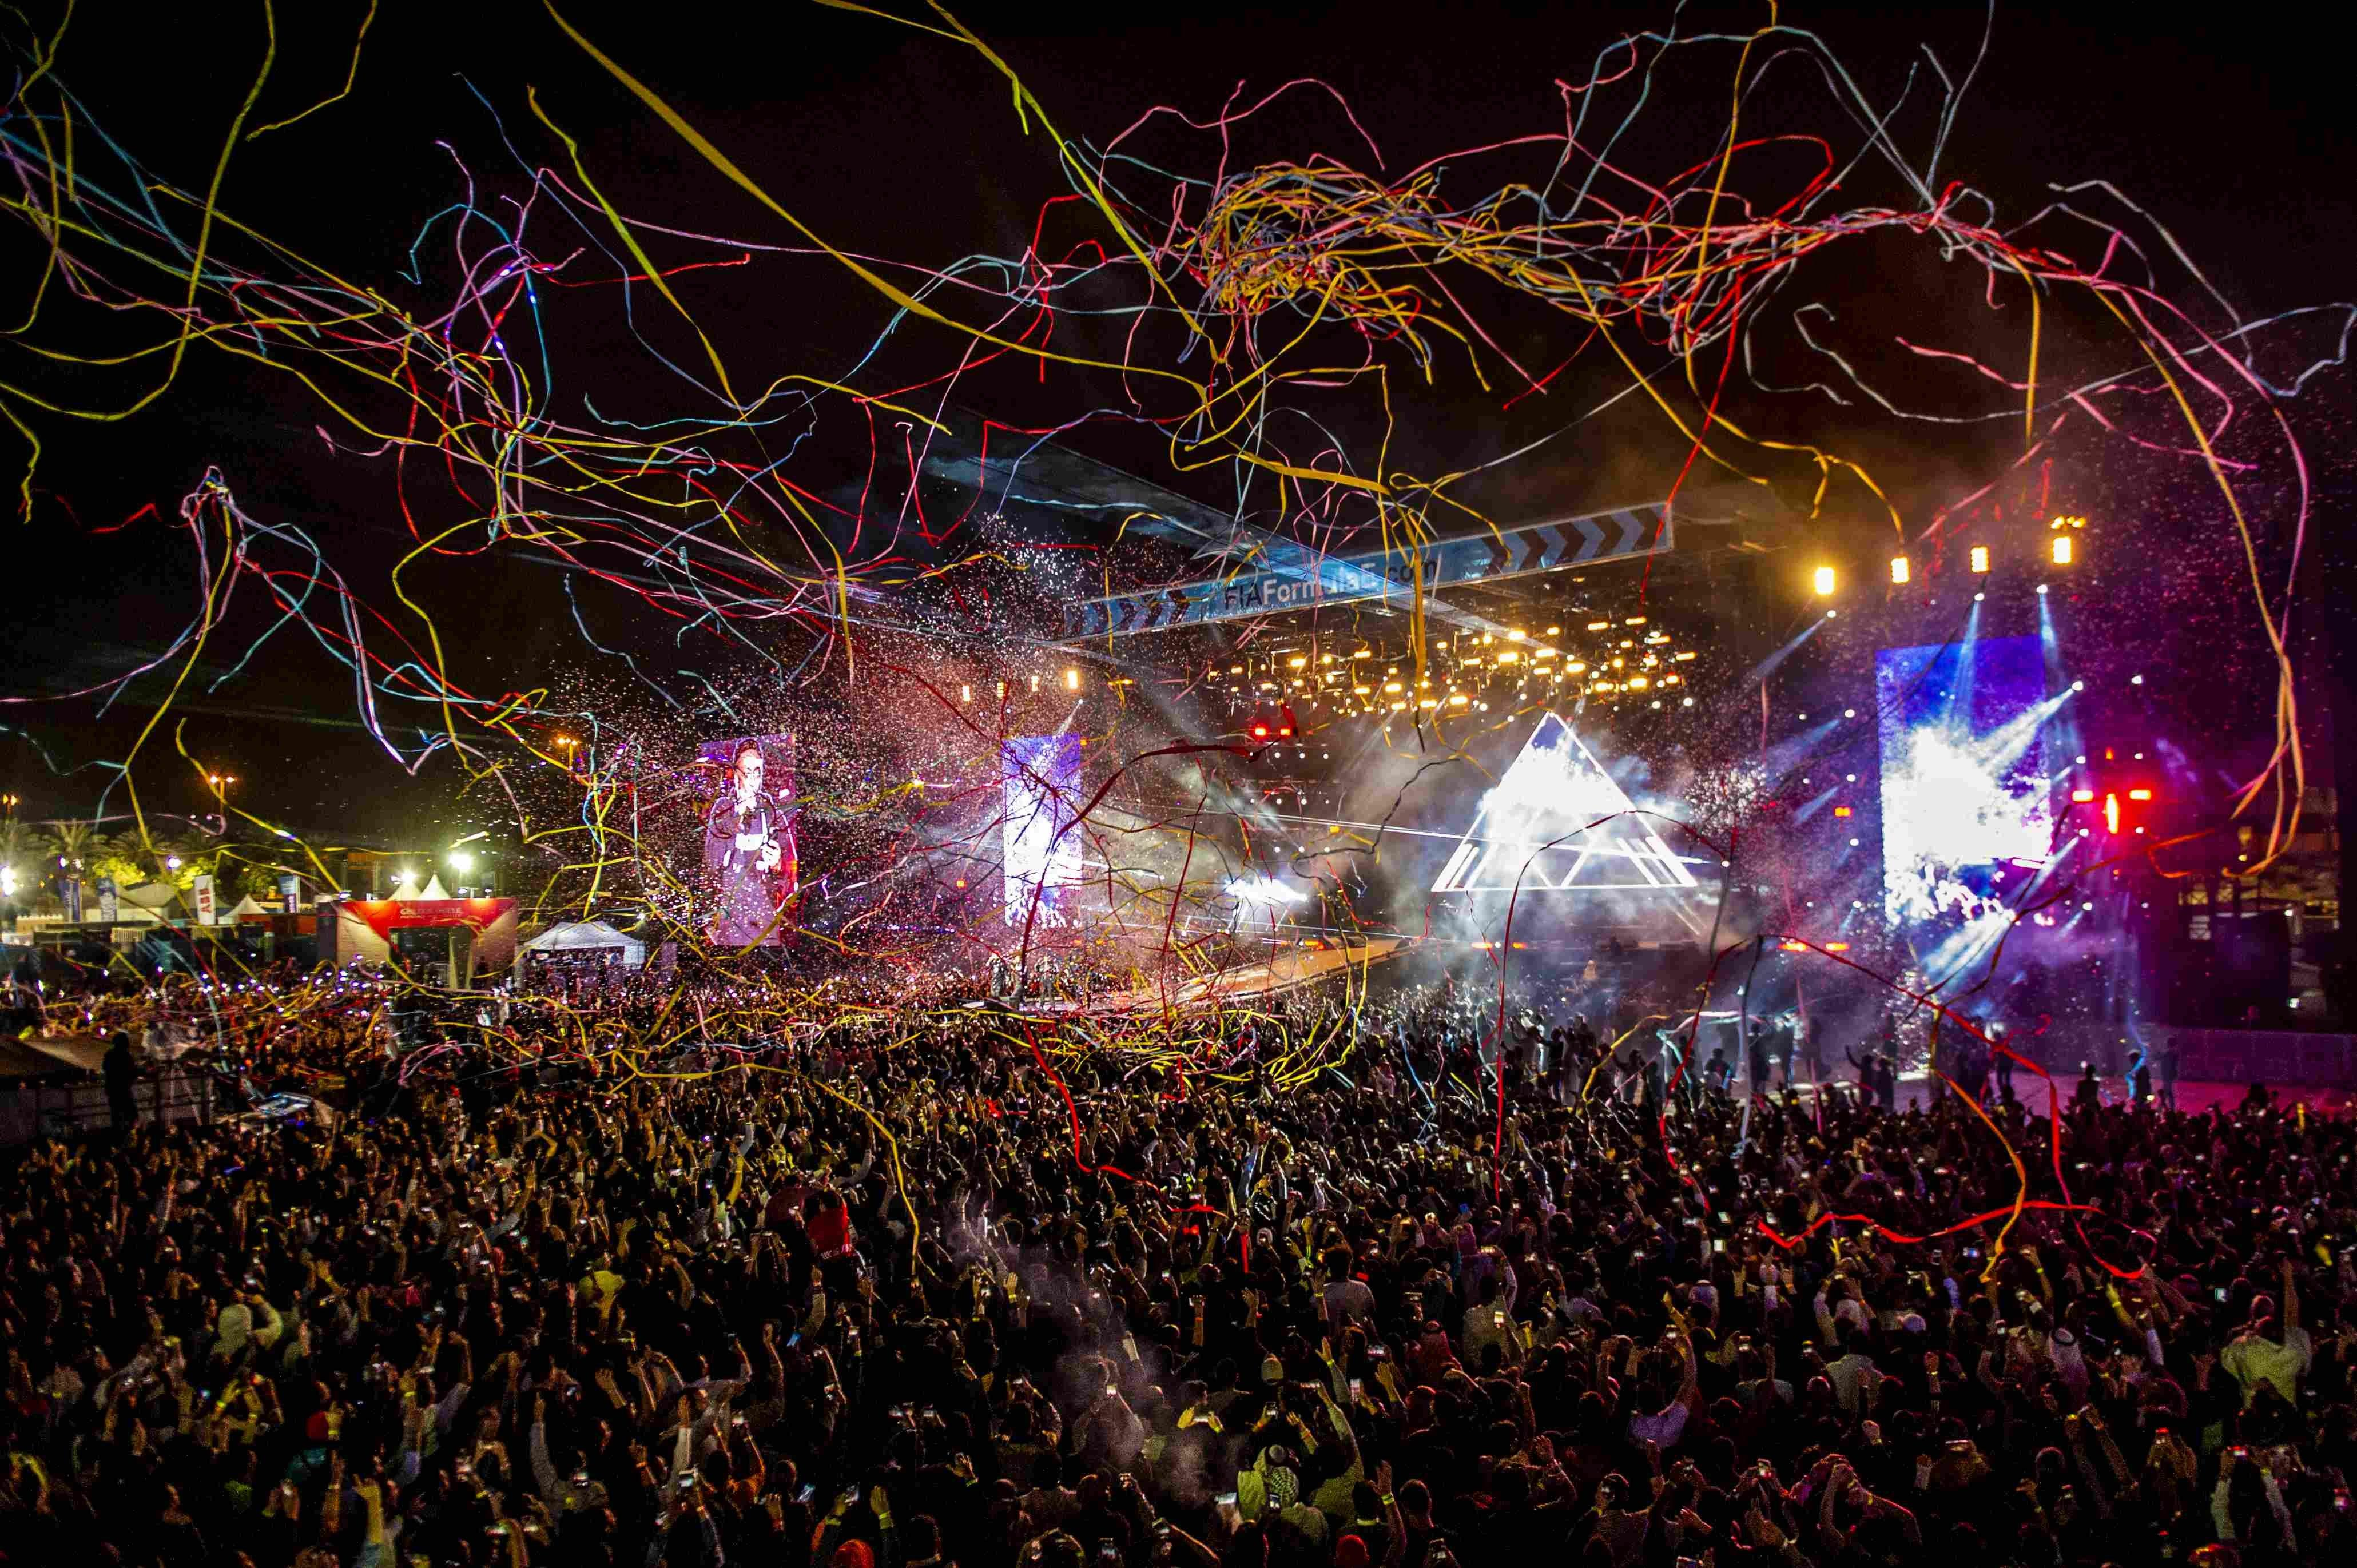 The likes ofThe Black Eyed Peas, Enrique Iglesias, Jason Derulo and David Guetta performed